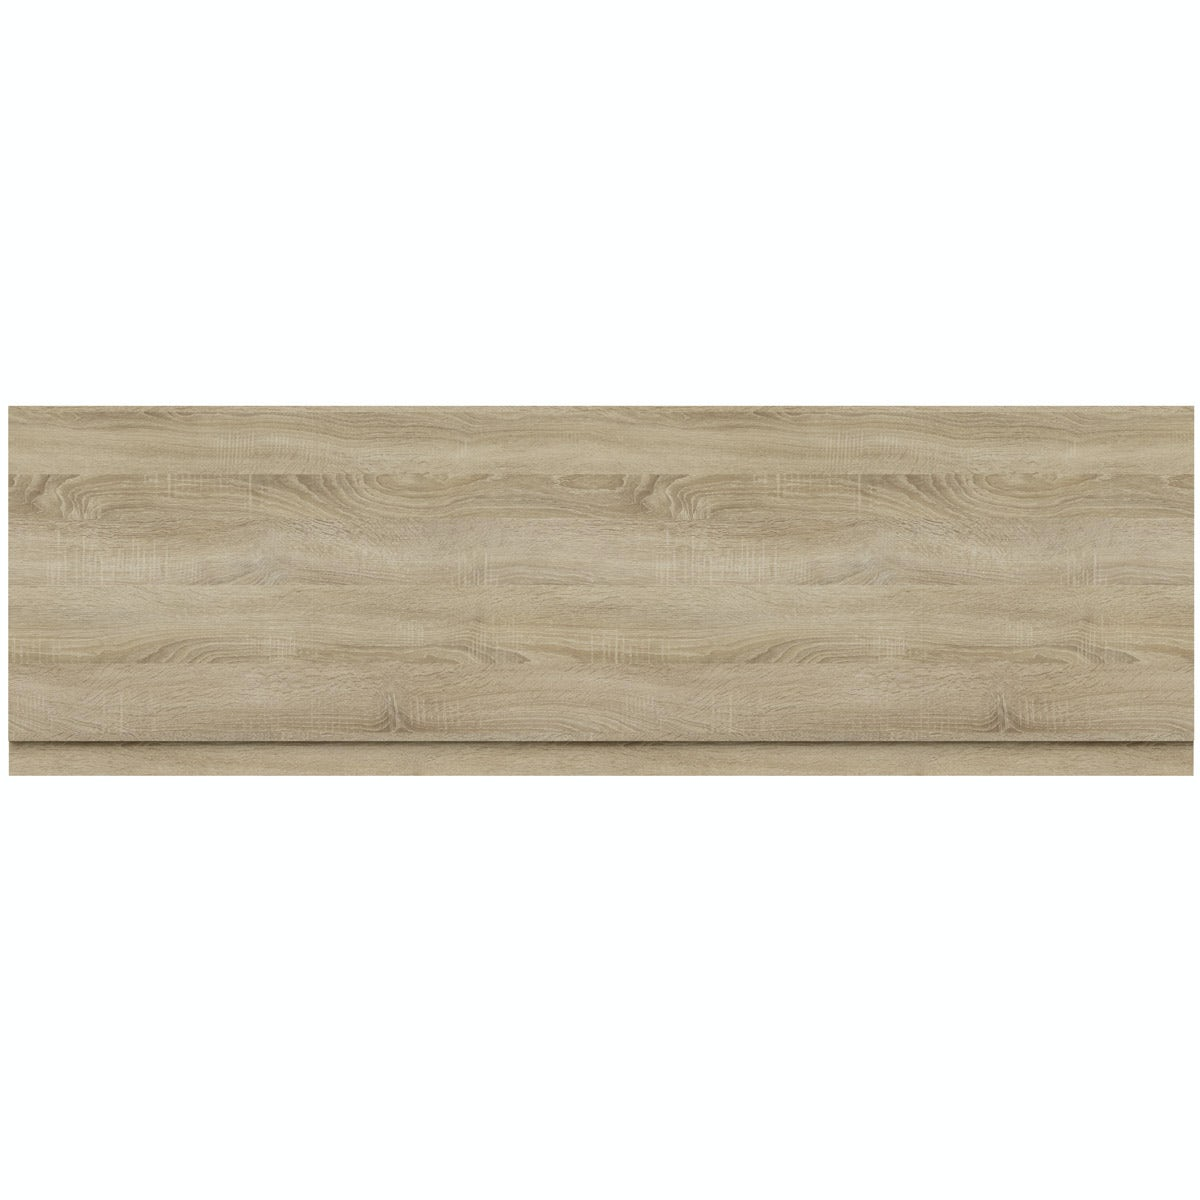 Orchard Wye oak bath front panel 1700mm